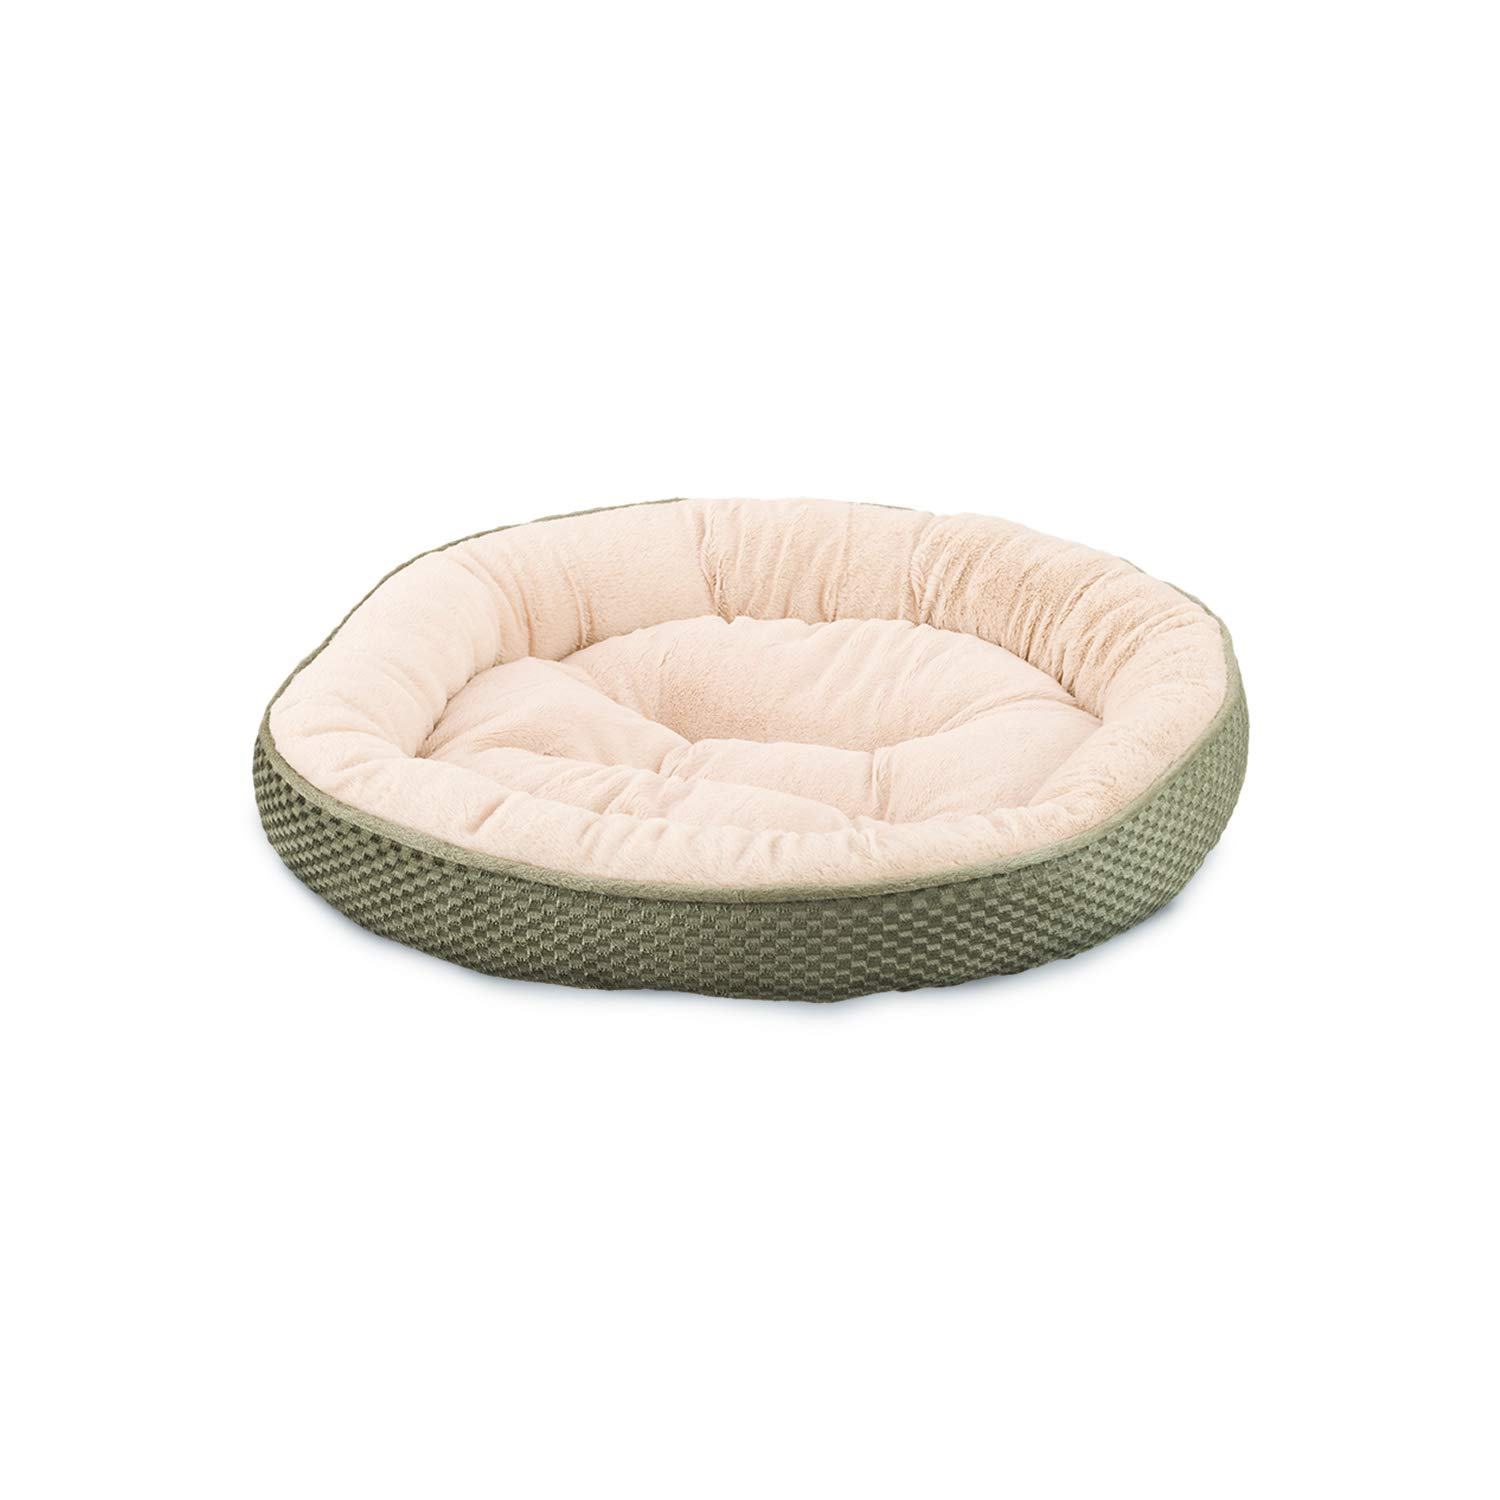 Ethical Pets Sleep Zone Checkerboard Napper Pet Bed, 20 , Sage